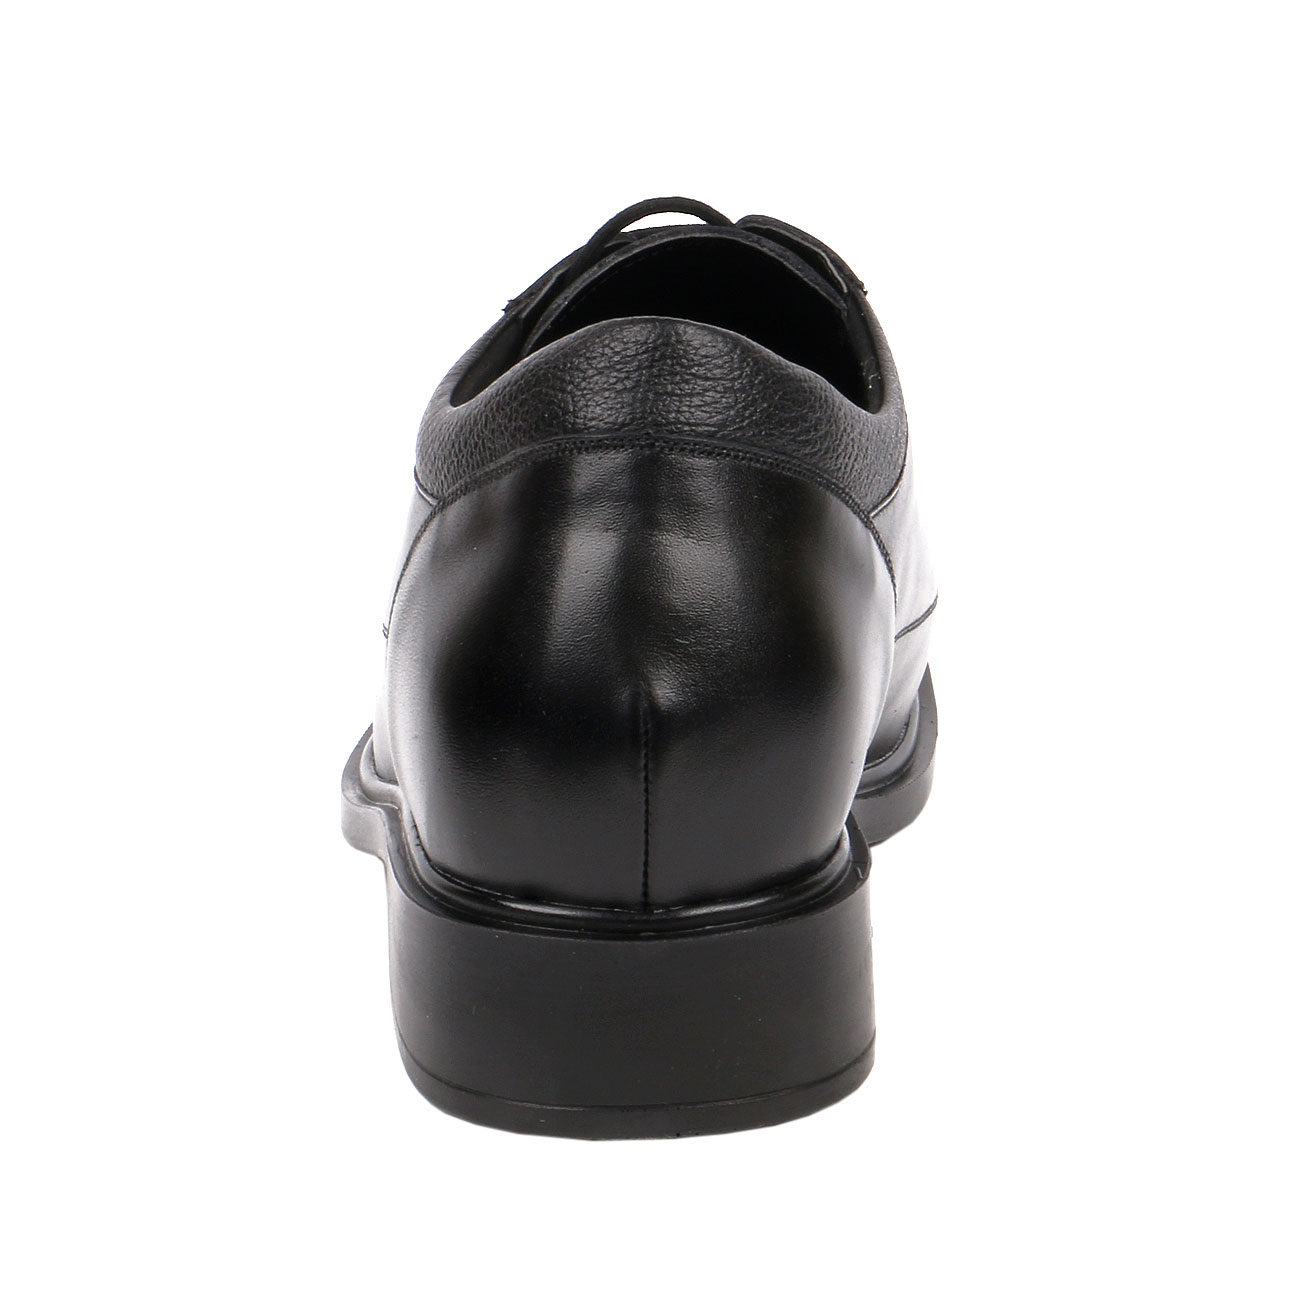 KL603, Comfortable Lightweight Semi Dress Wide Shoe with more Informal Sports Outfits with Unique Bicycle Toe Design, 3 Inch Tall-3